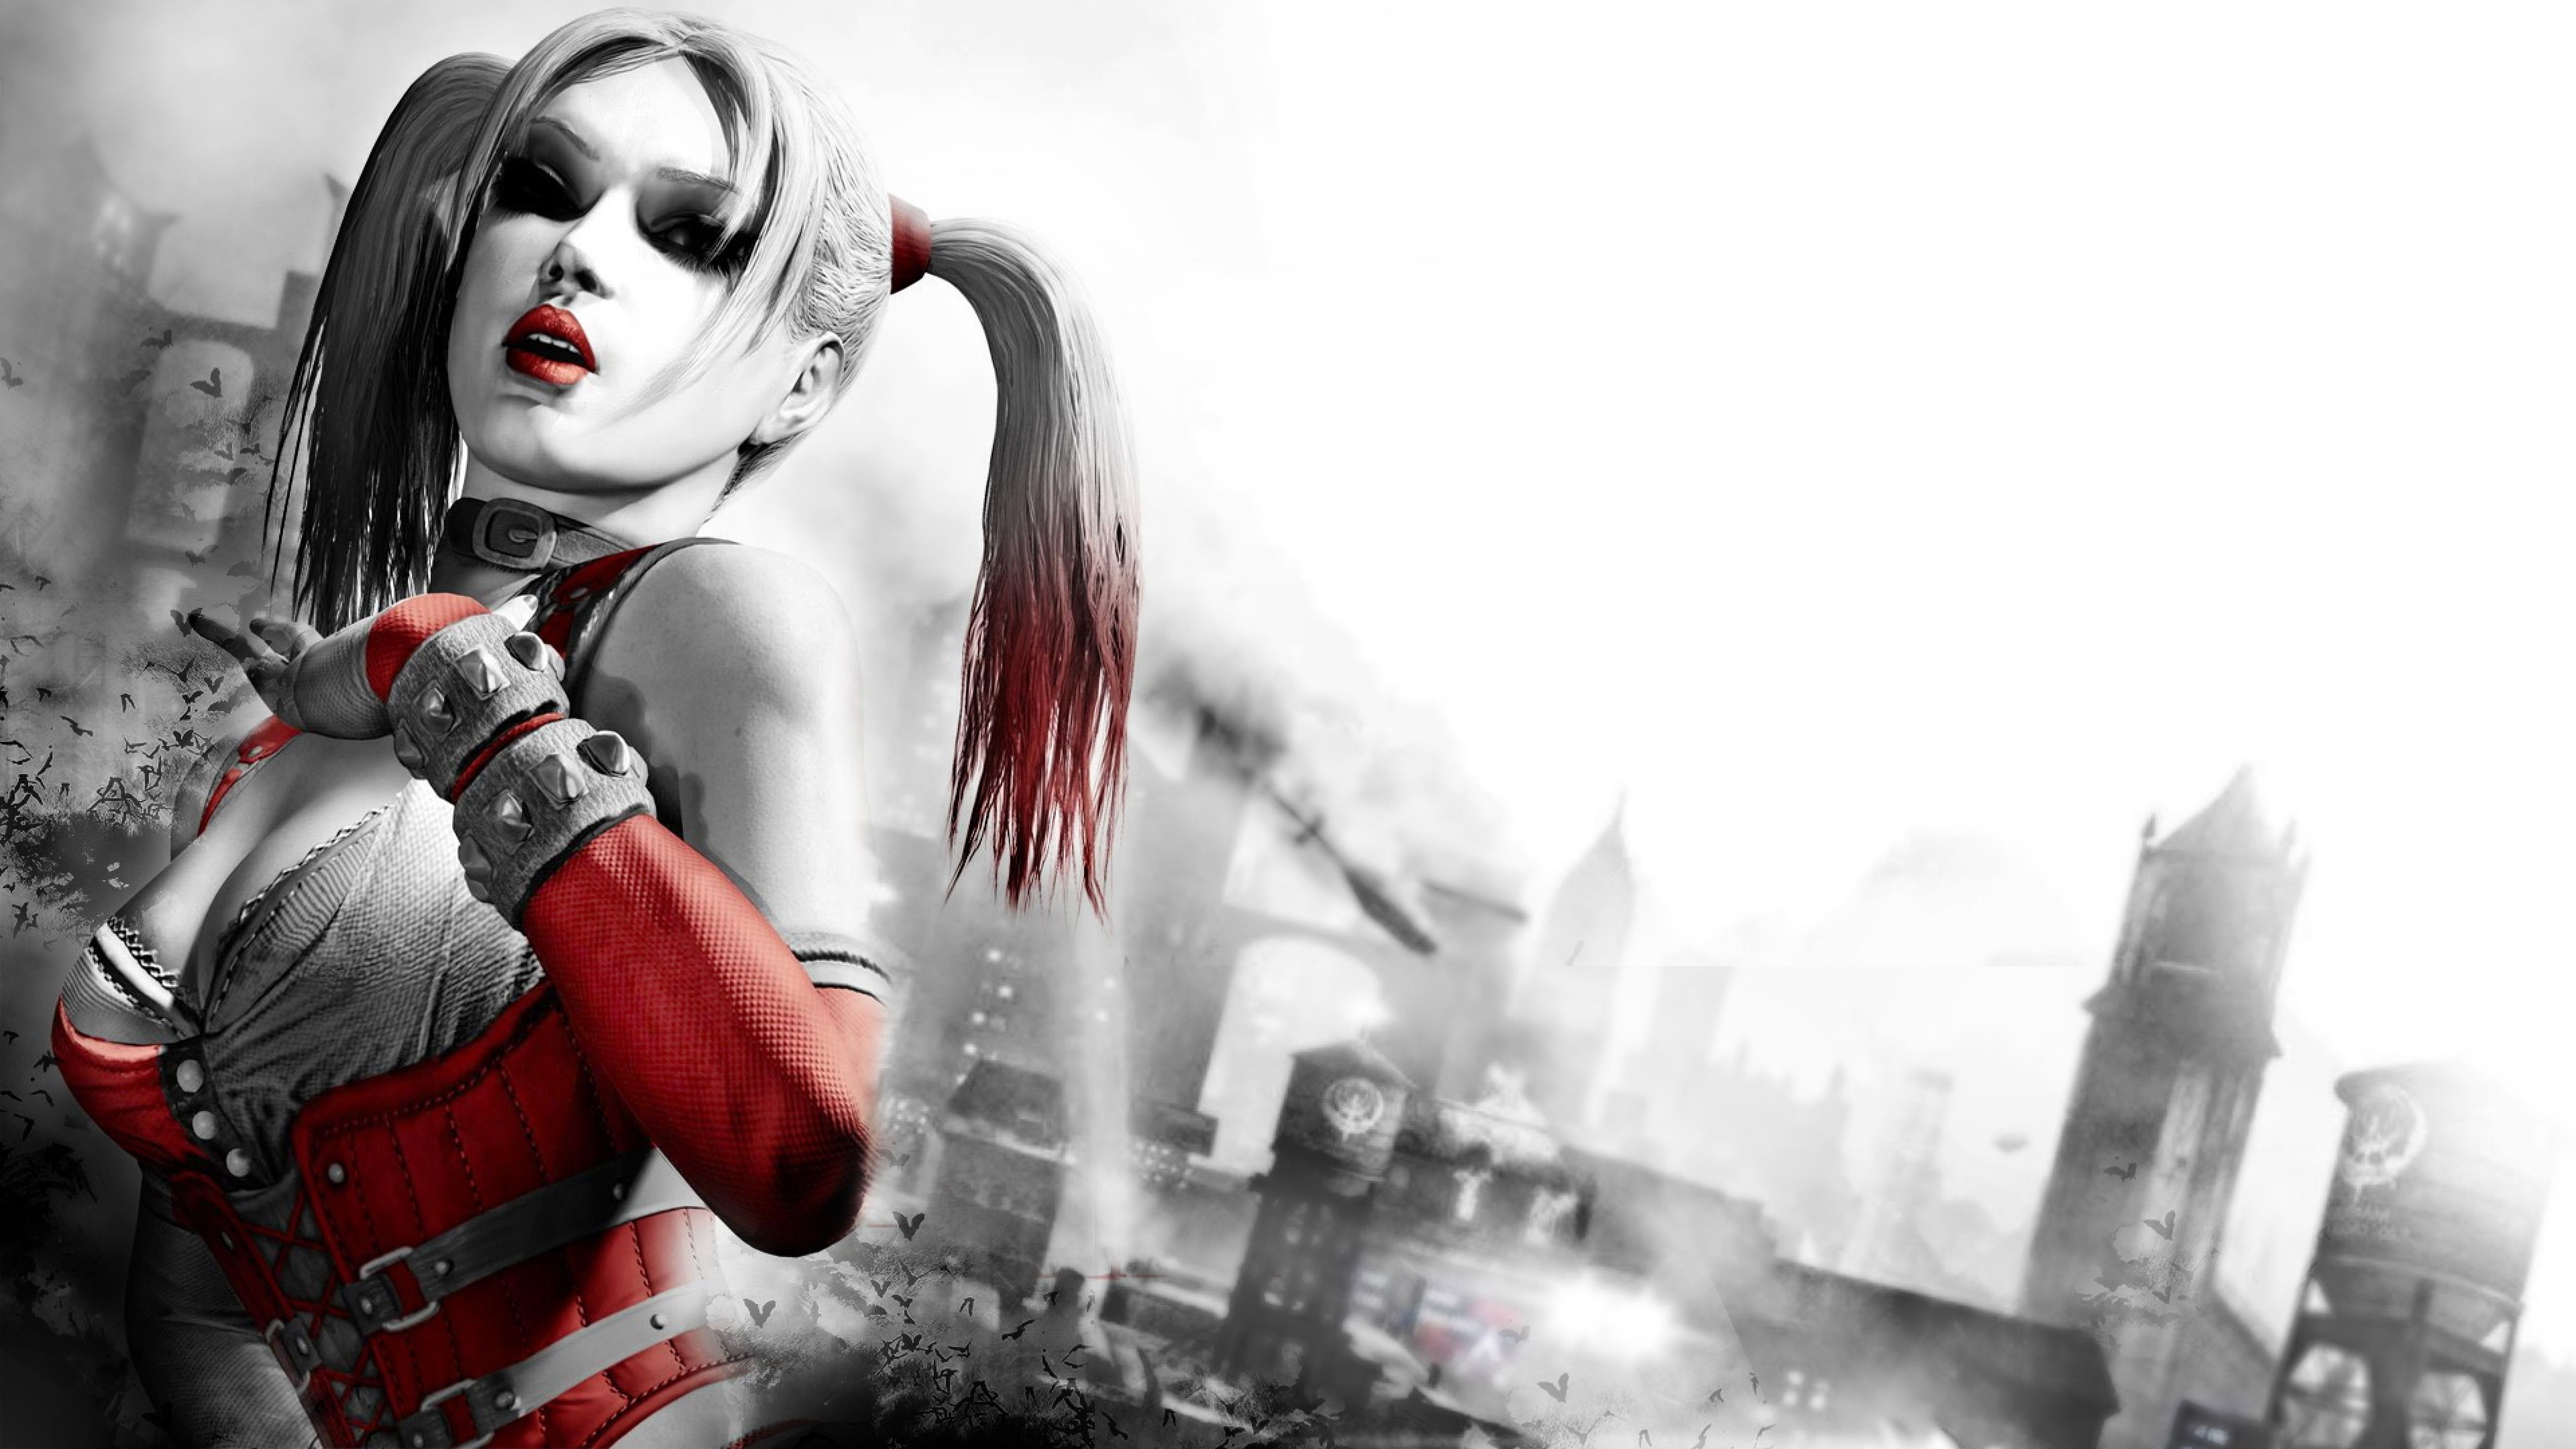 Harley Quinn Desktop Wallpaper (76+ images)